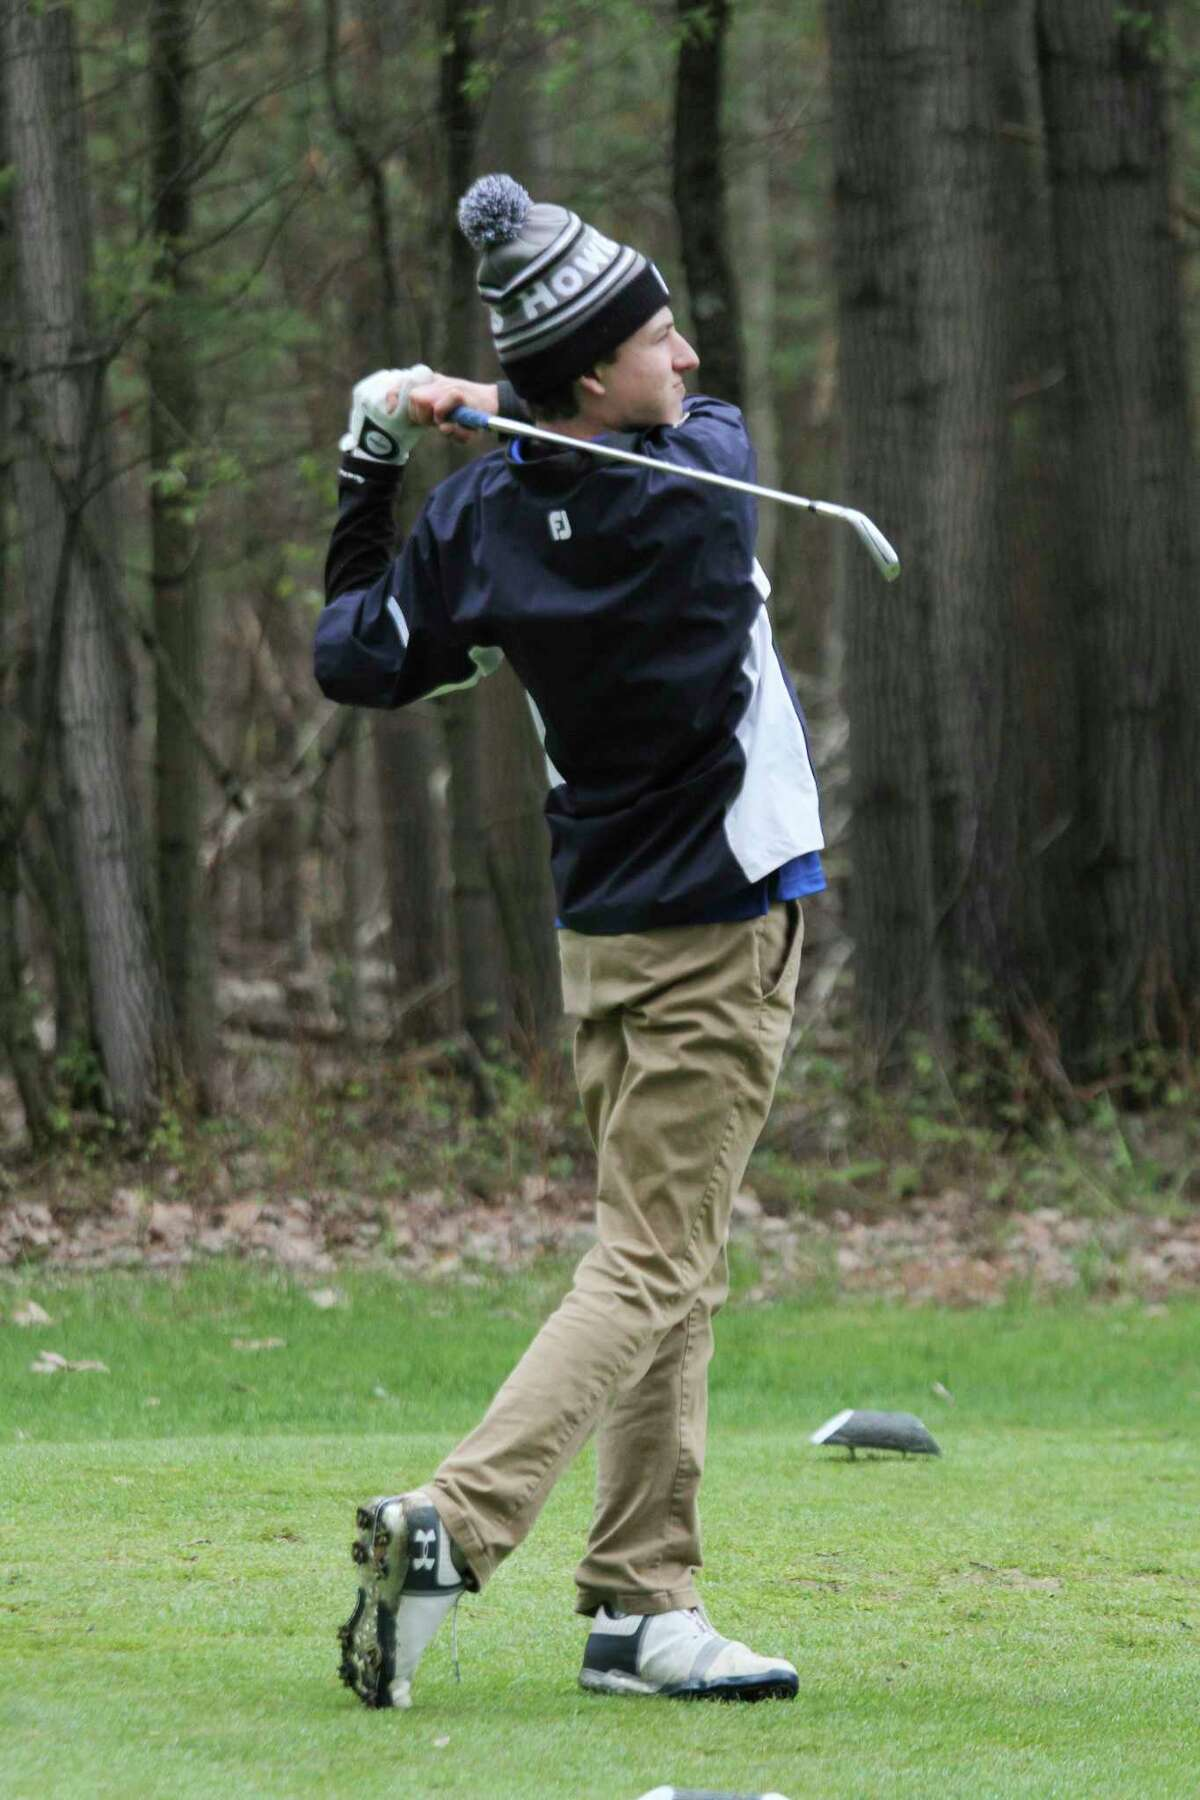 Manistee Catholic Central junior Alex Shriver will play in the Division 4 state finals on Friday and Saturday at The Fortress in Frankenmuth. (News Advocate file photo)